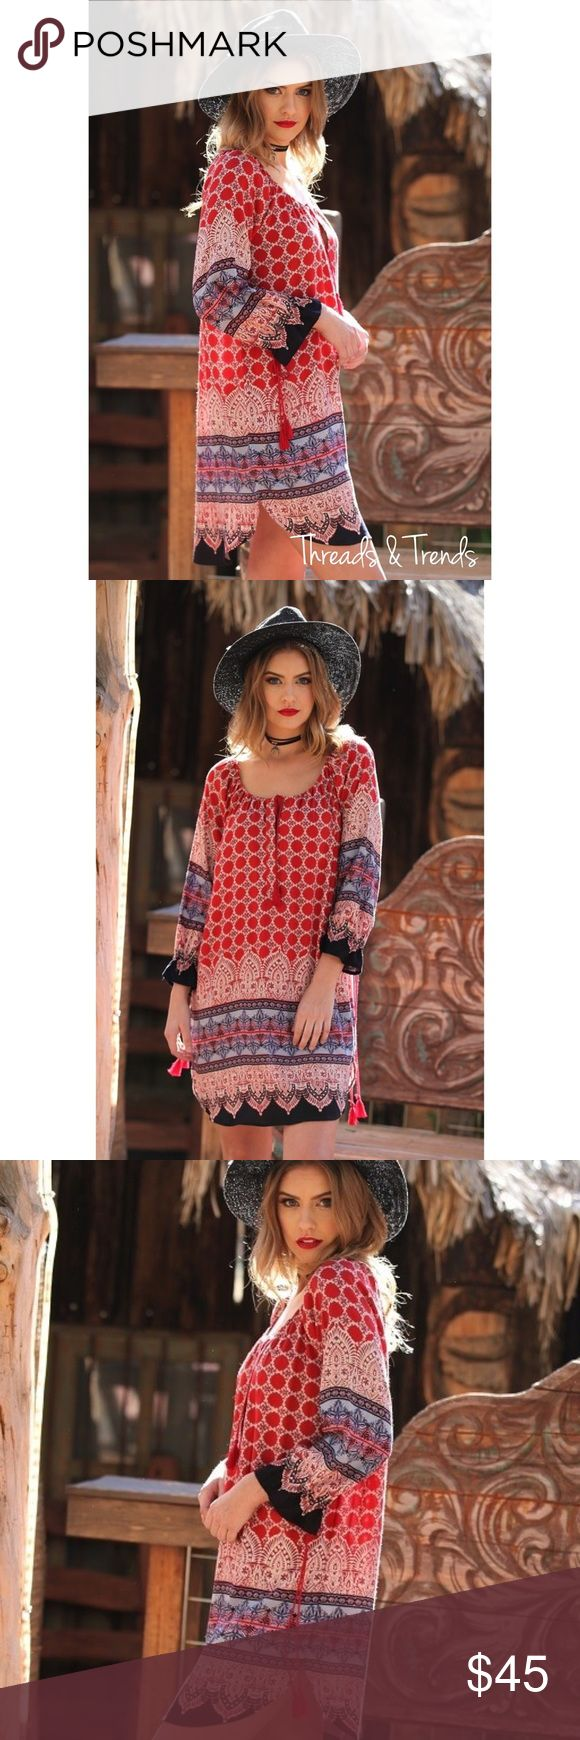 Crimson Red Tunic Dress Stunning crimson red Tunic dress. Featuring drawstring neckline and tassel tie detail down the sides. Super comfortable, pair with leggings or wear as a dress. Size S/M, M/L, L/XL Threads & Trends Dresses